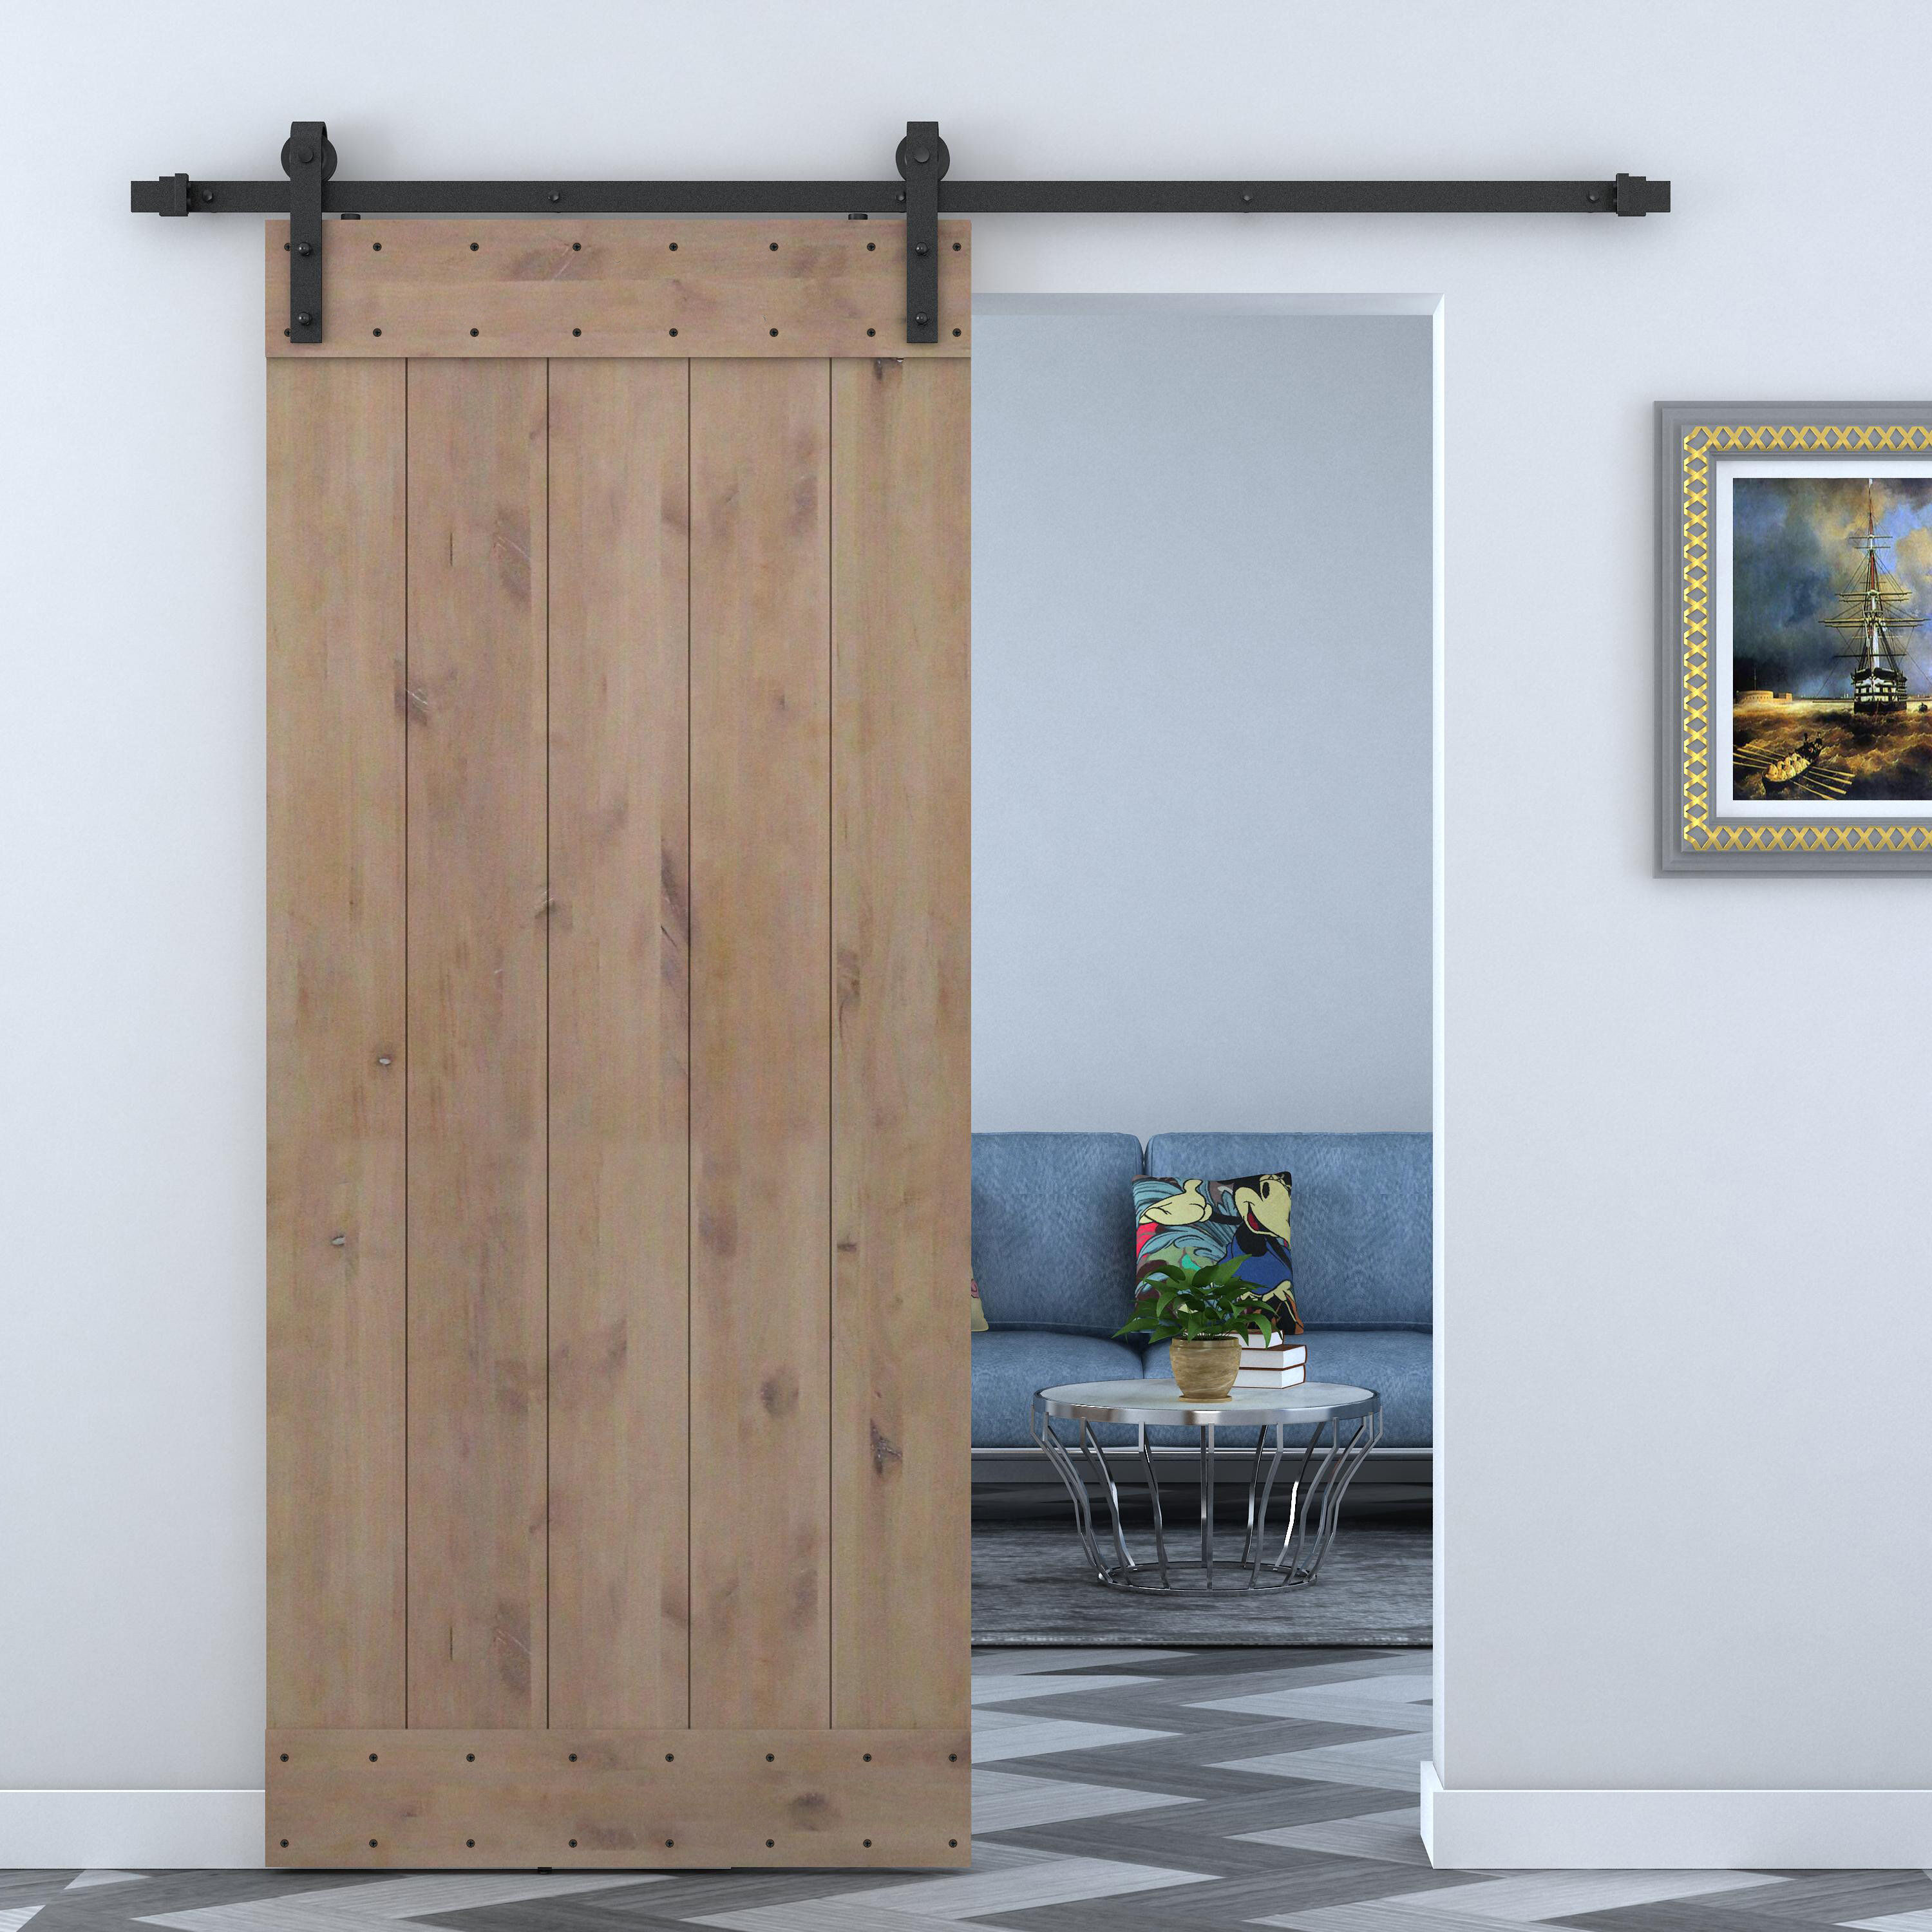 Calhome Solid Wood Panelled Alder Interior Barn Door Reviews Wayfair